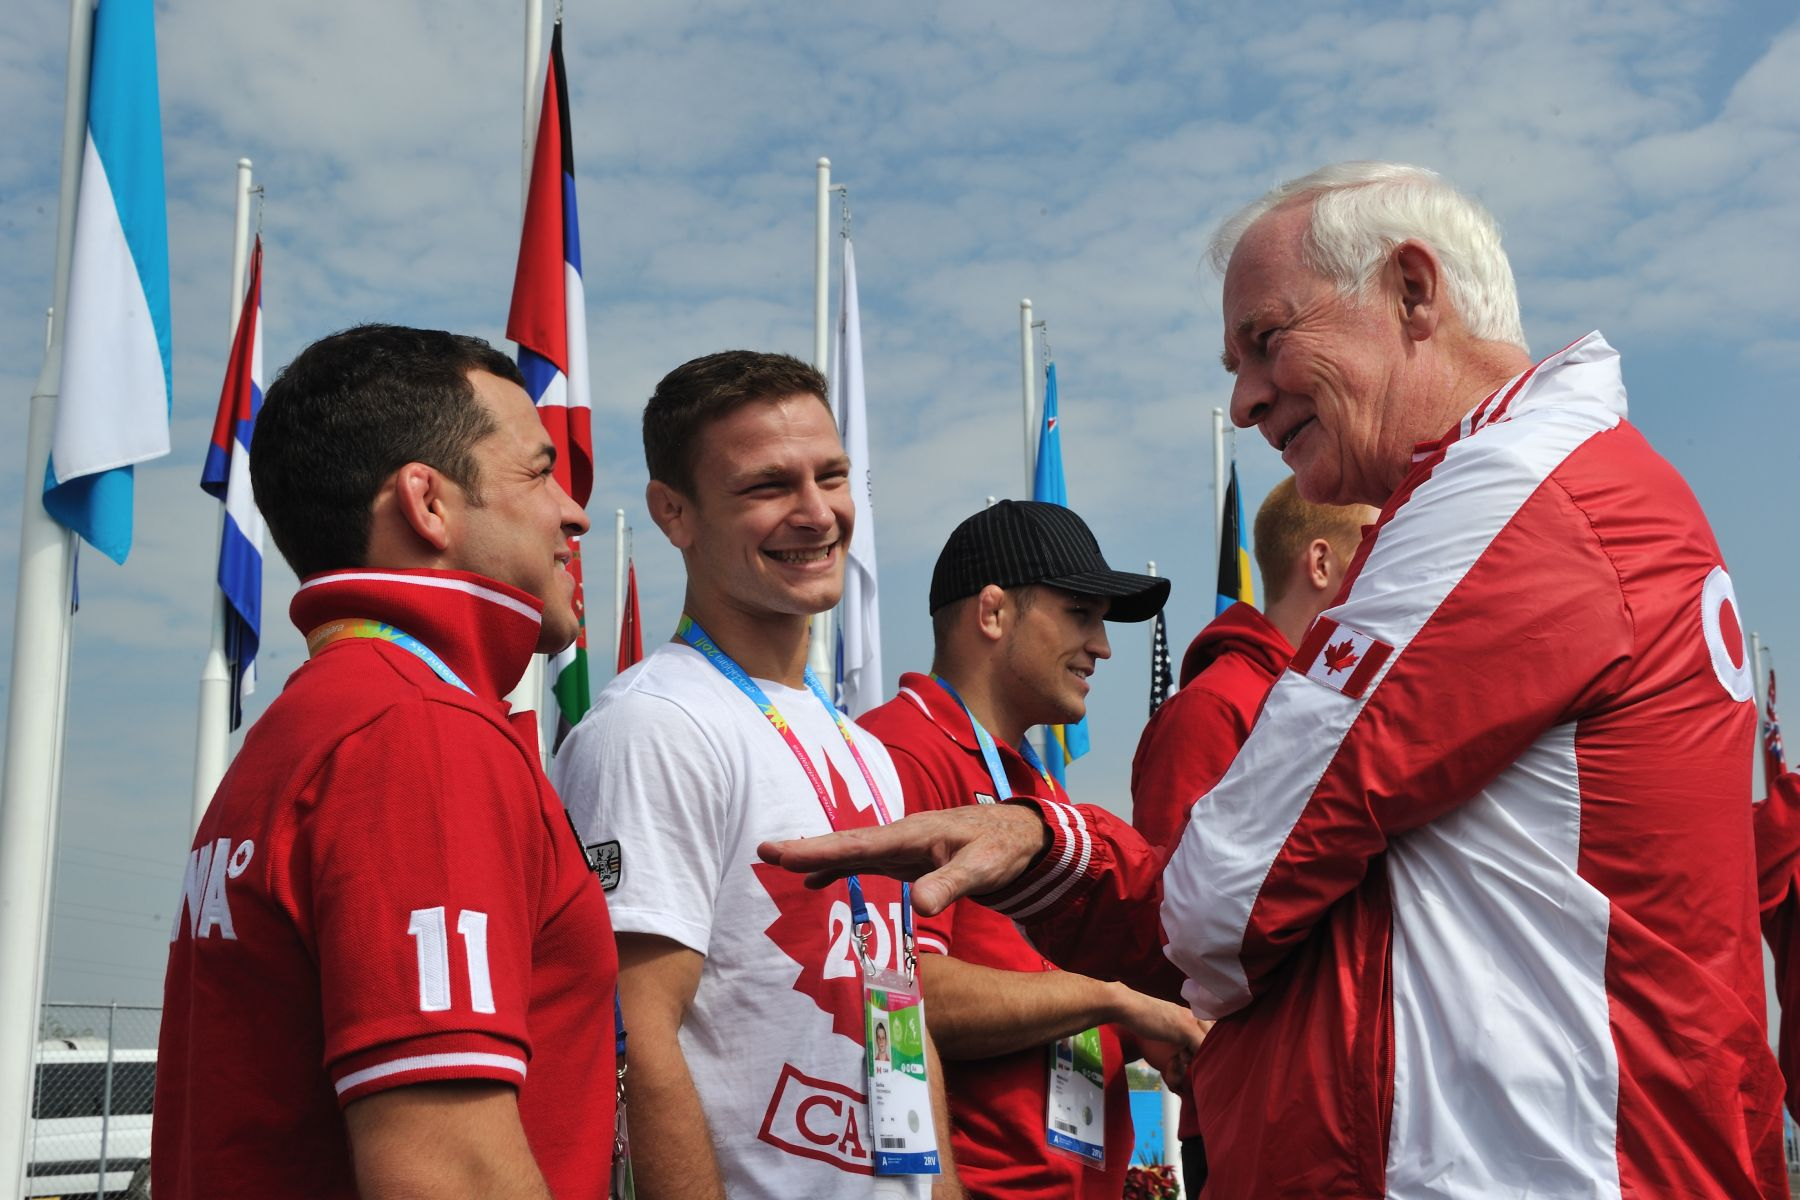 During his tour of the international zone, the Governor General met with members of Canada's Judo Team.